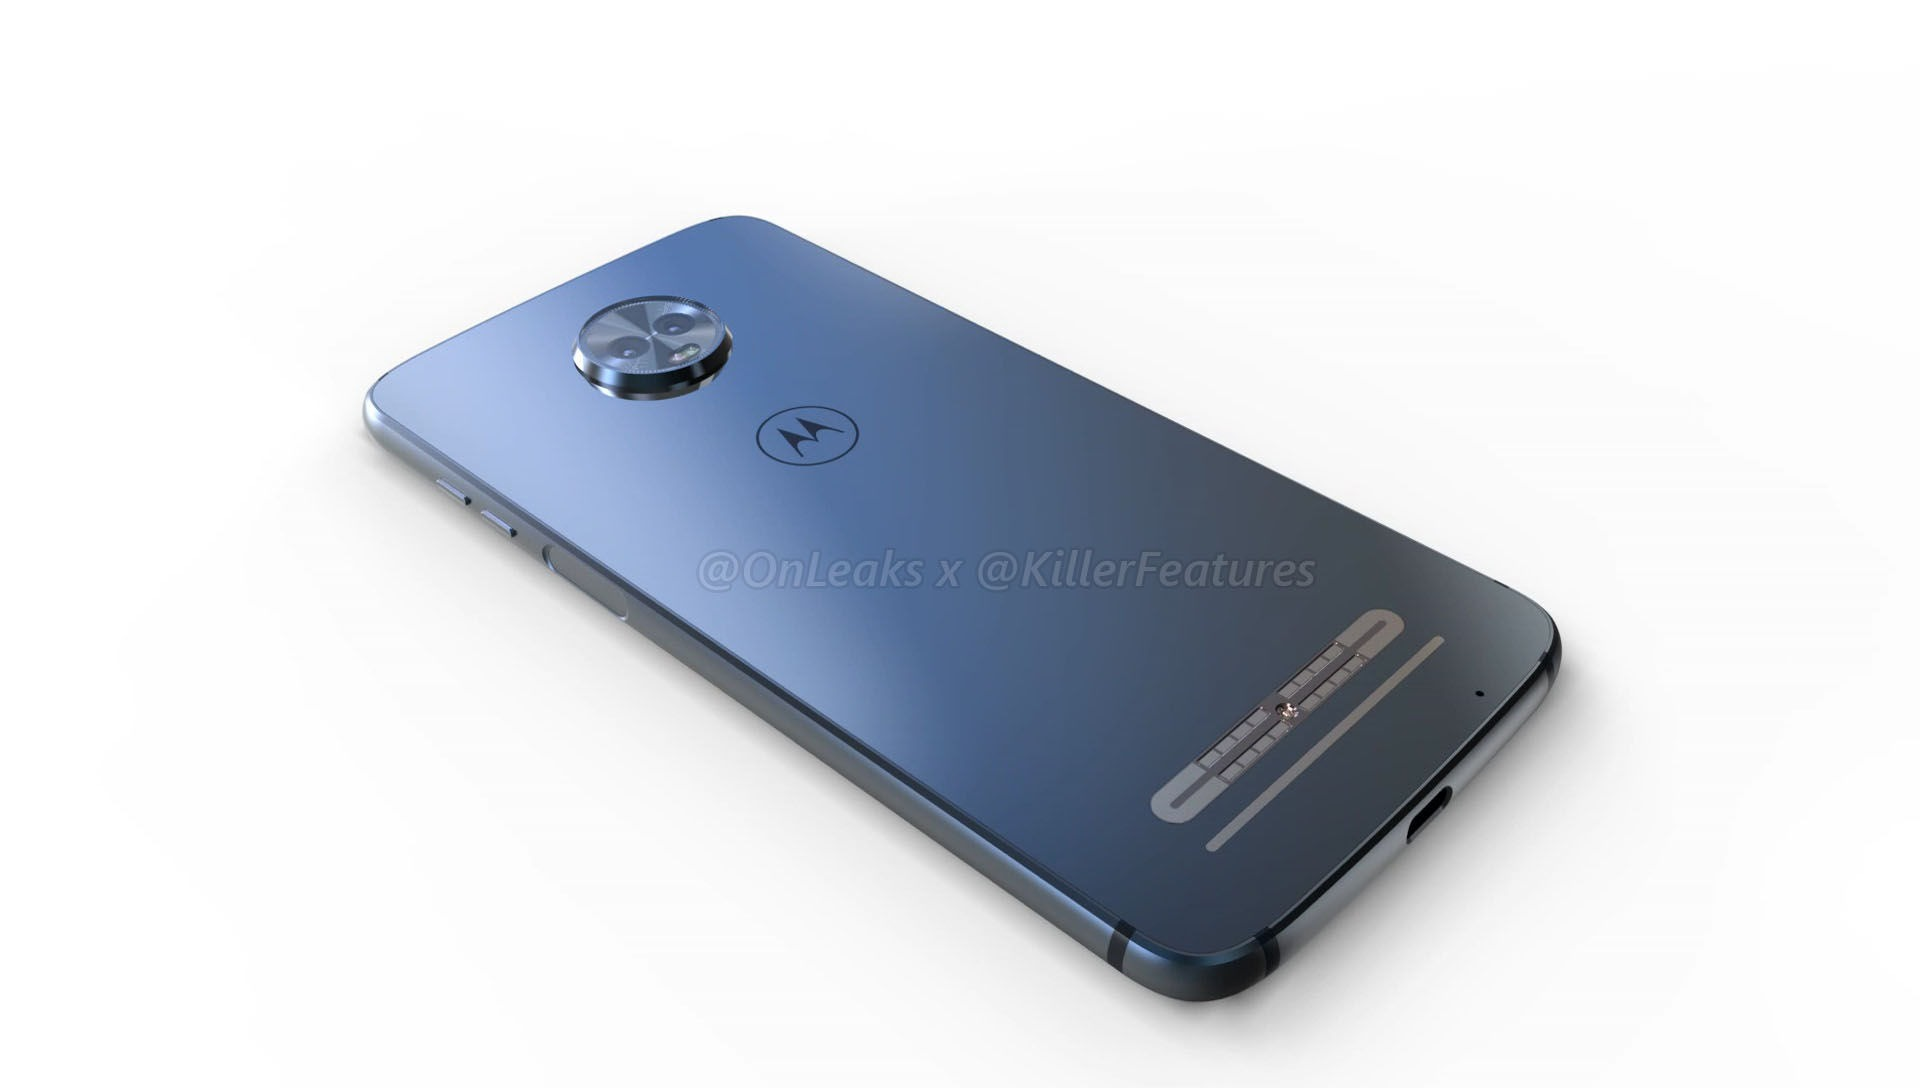 Here are the 360-degree renders of the upcoming Moto Z3 Play